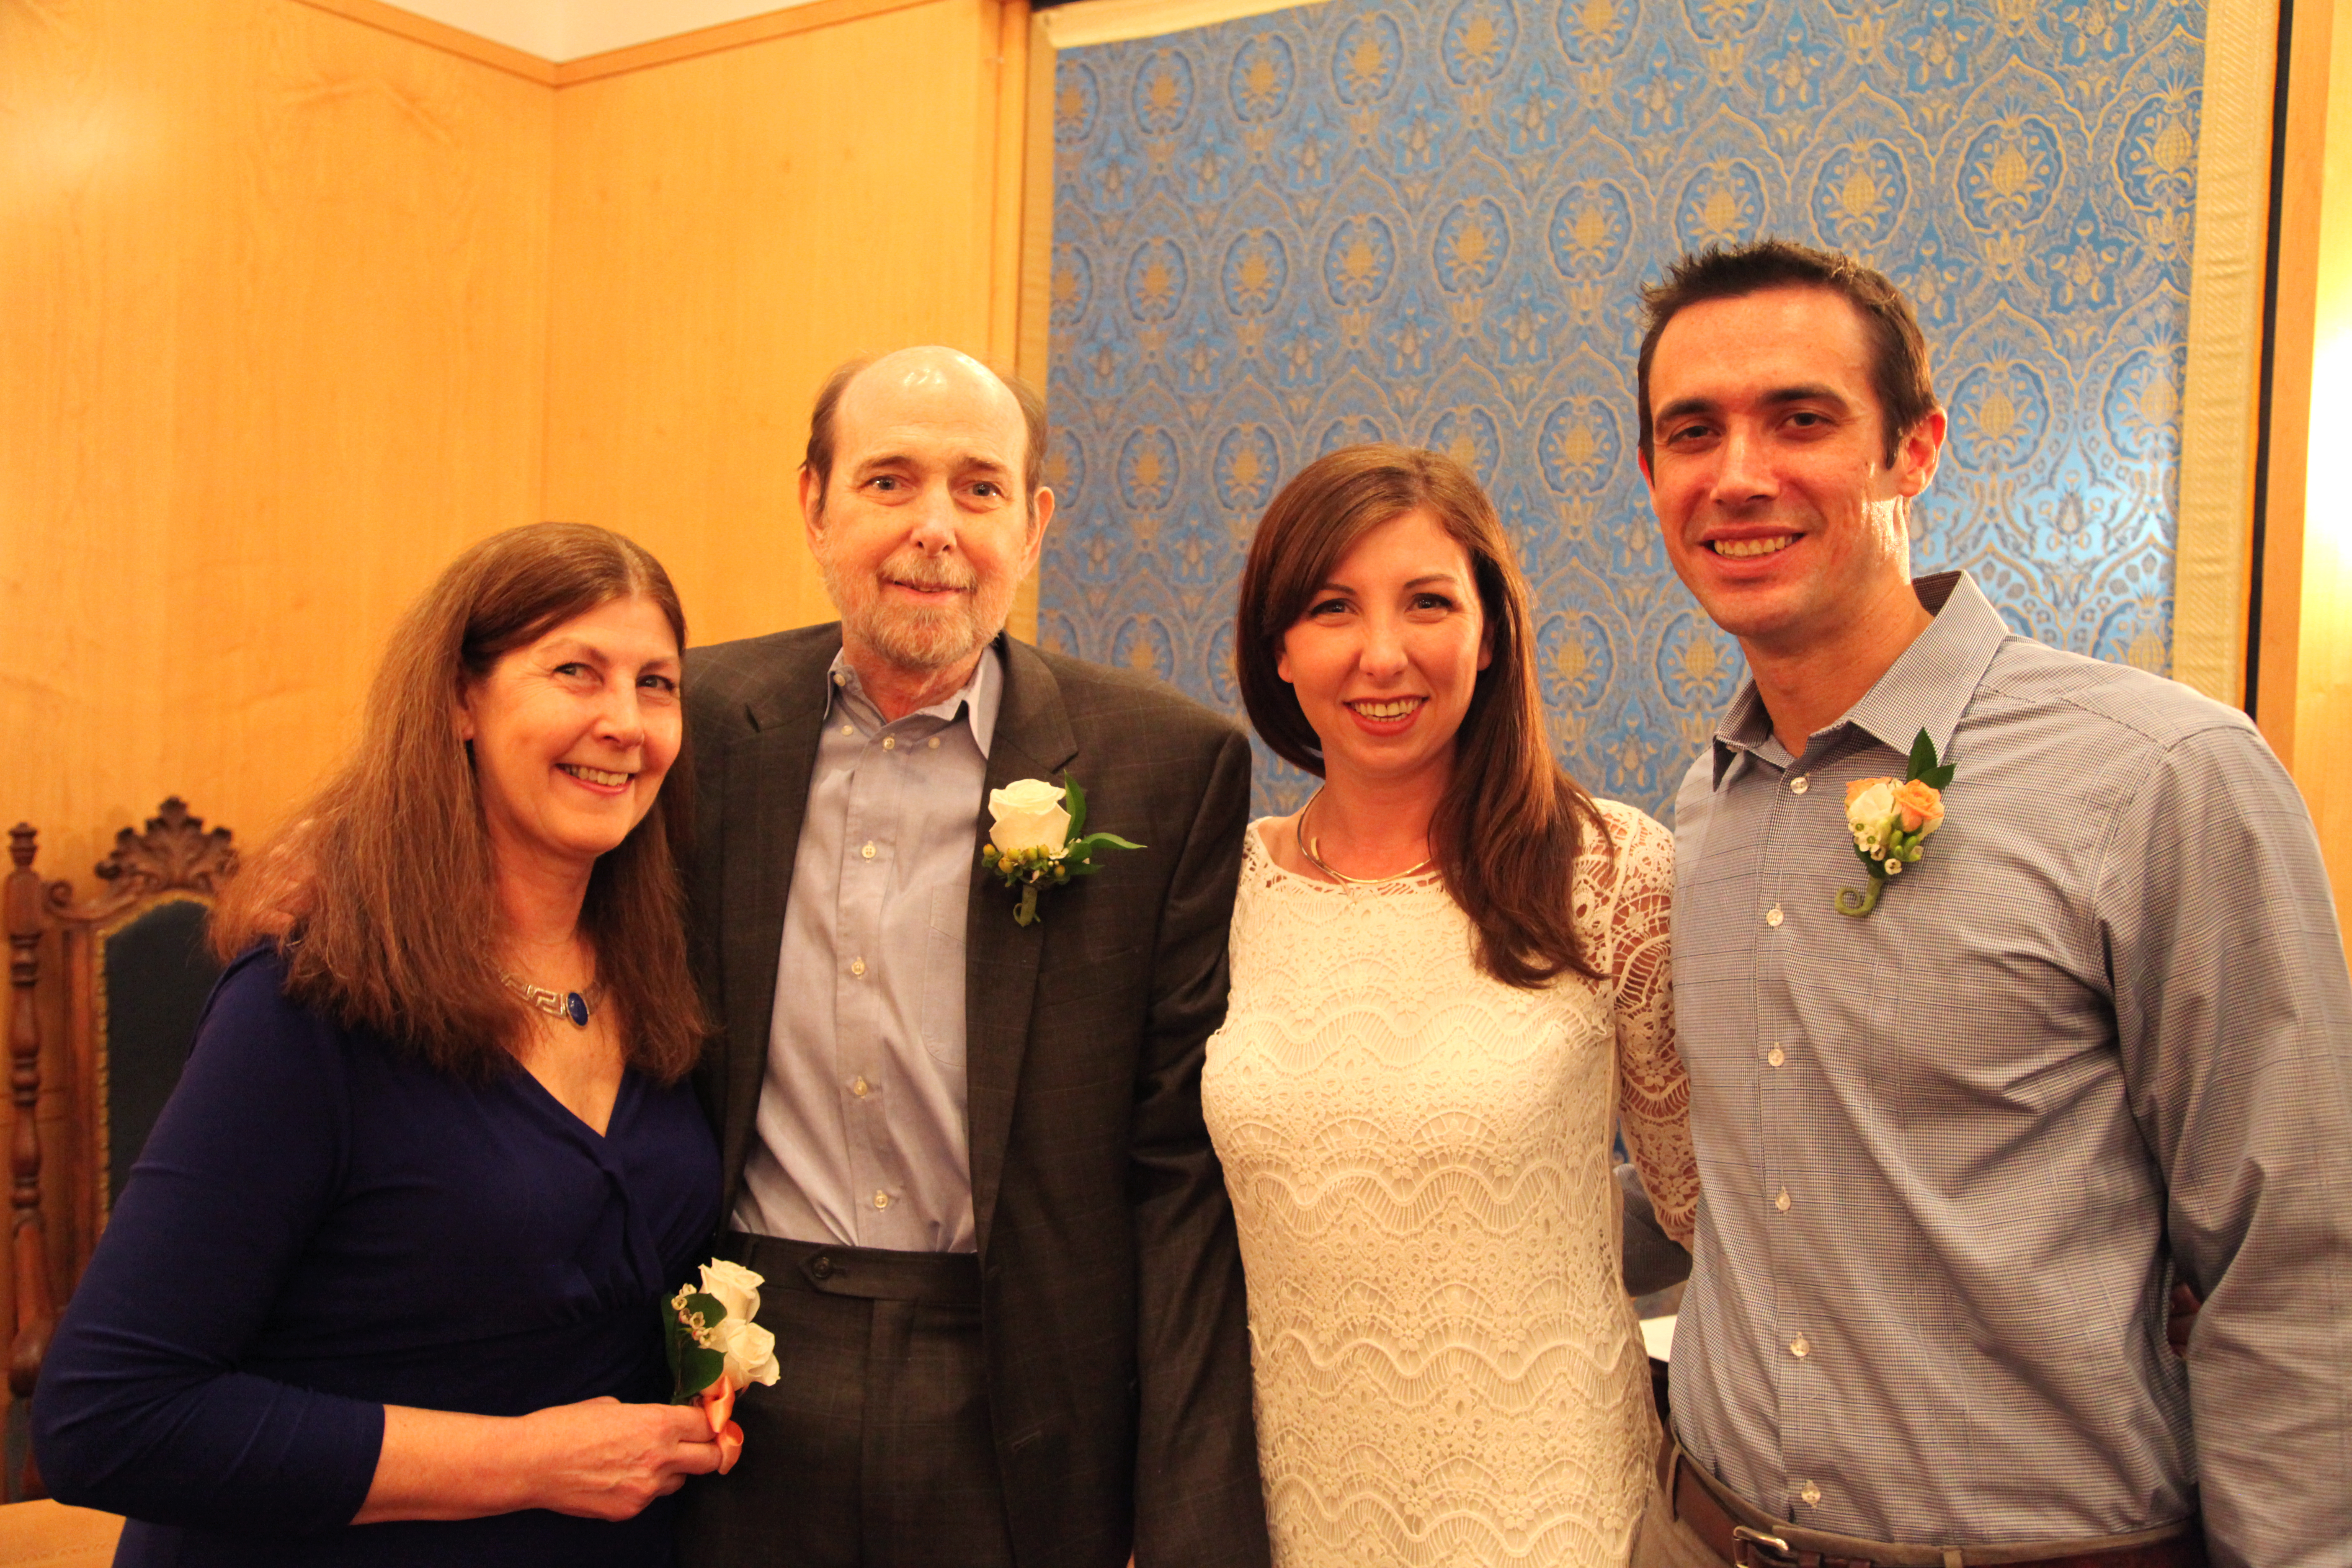 From left: Debbie and James Gleason with daughter, Anne, and son-in-law, Danny Brady, during their wedding ceremony at BWH.